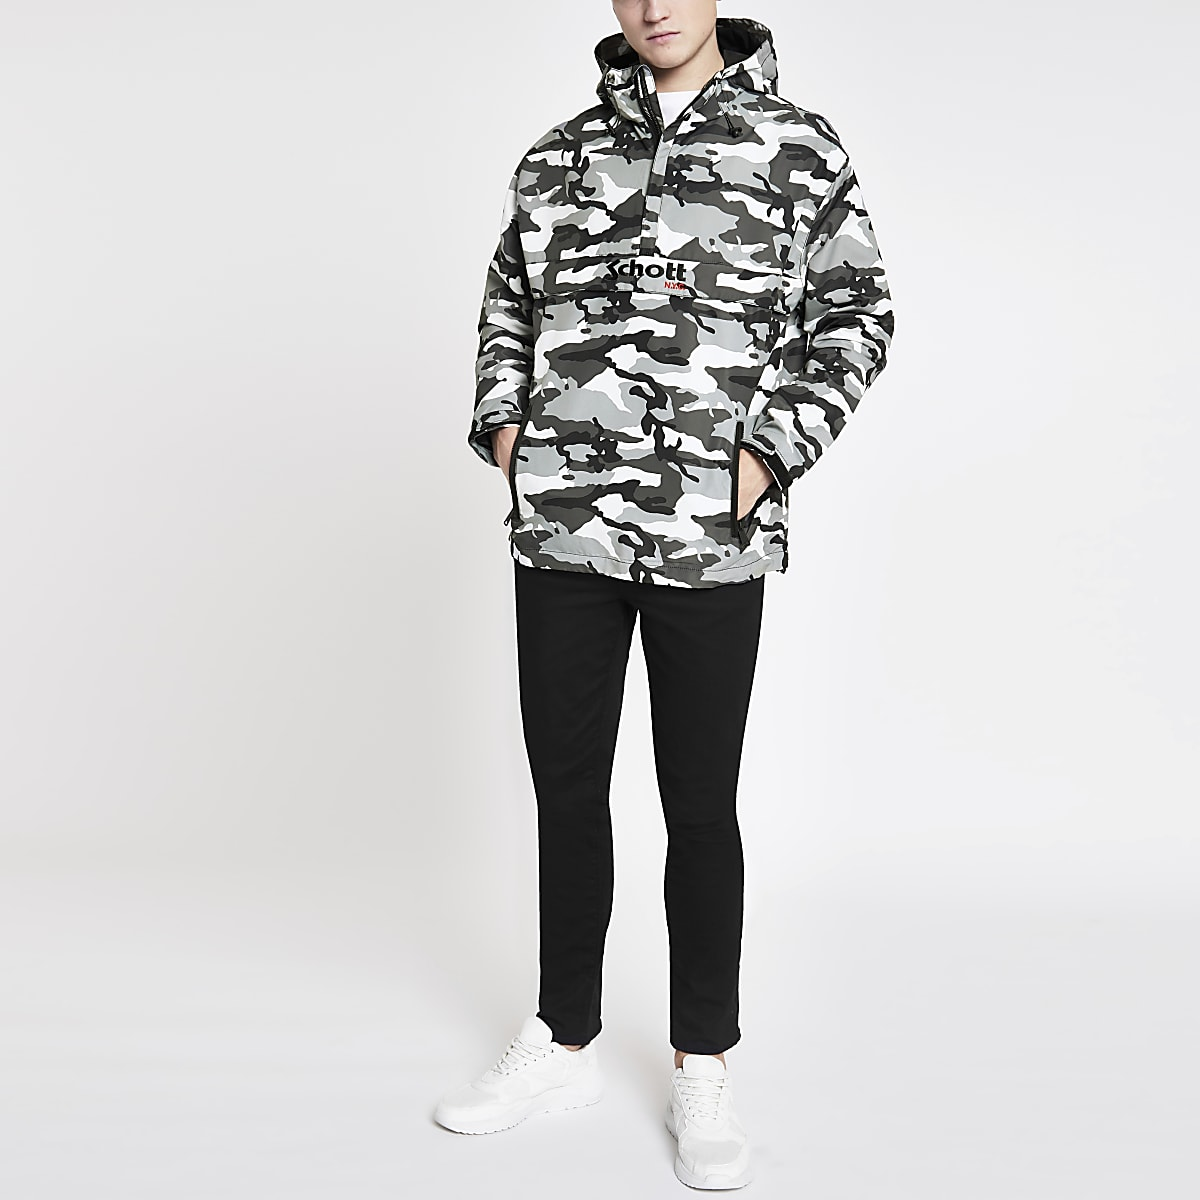 Schott grey camo lightweight hooded jacket